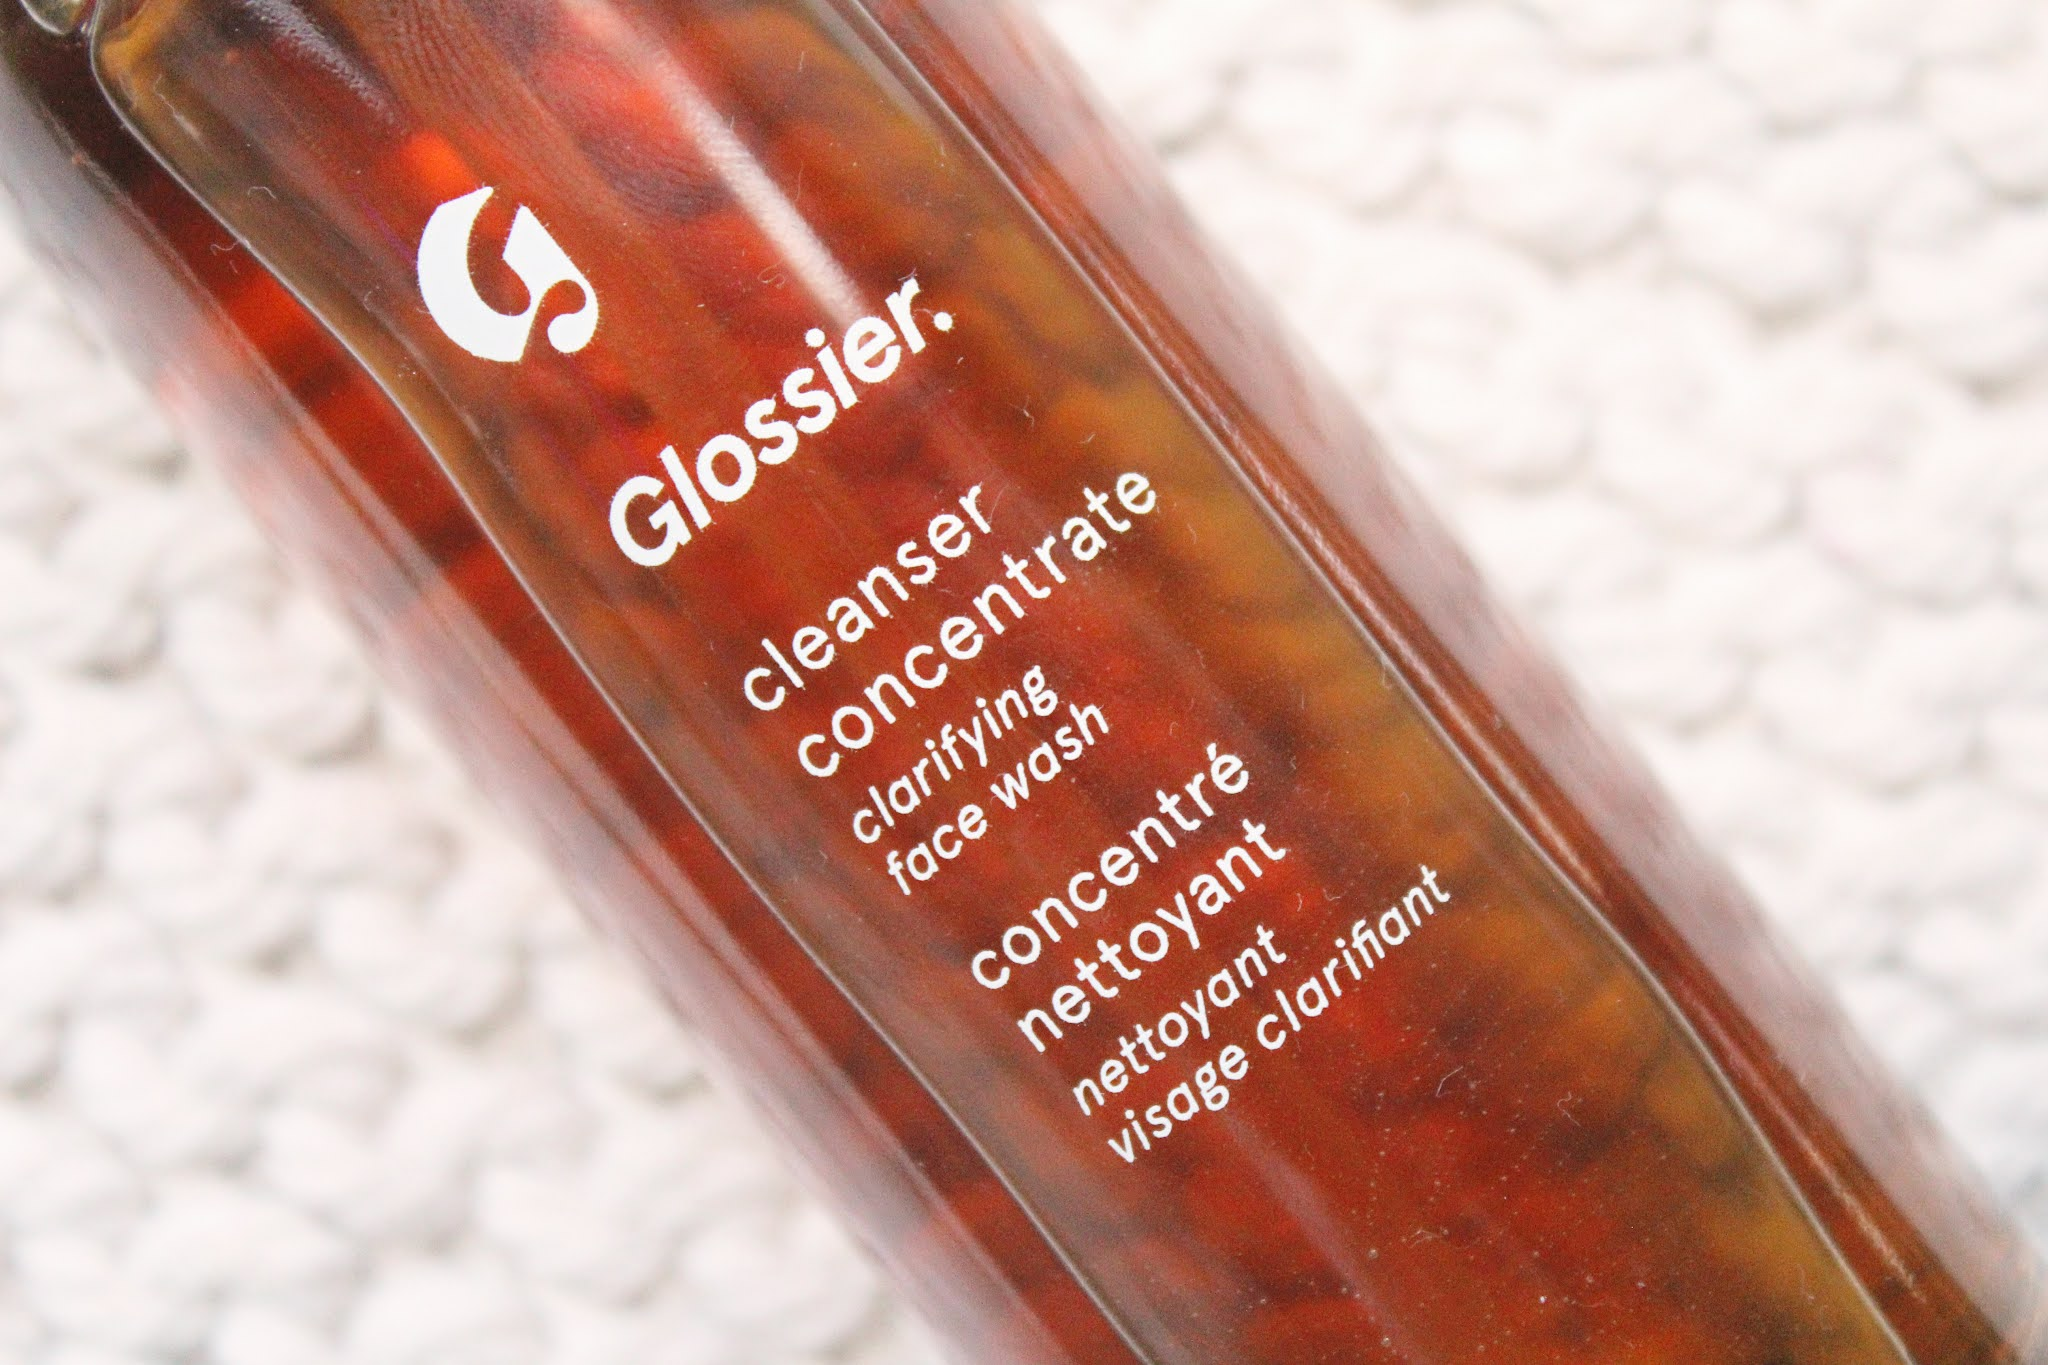 Glossier Cleanser Concentrate Review (+ Discount Code)